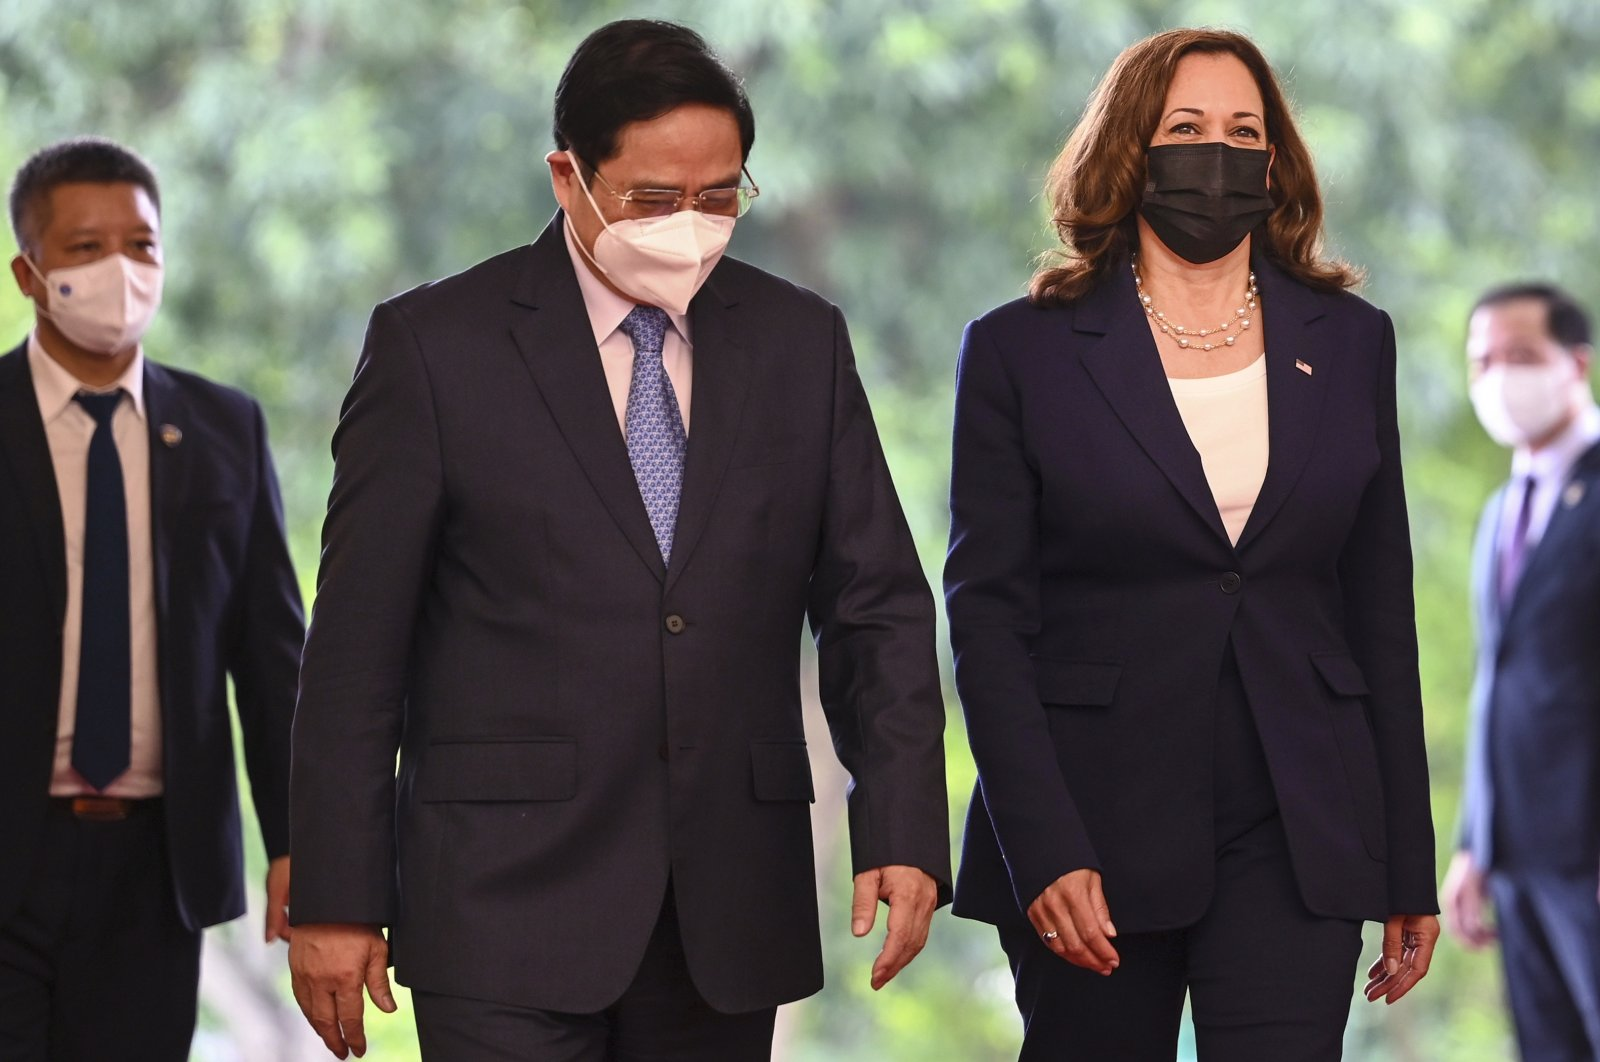 U.S. Vice President Kamala Harris, third from left, walks with Vietnamese Prime Minister Pham Minh Chinh at the government office in Hanoi, Vietnam, Aug. 25, 2021. (AP Photo)